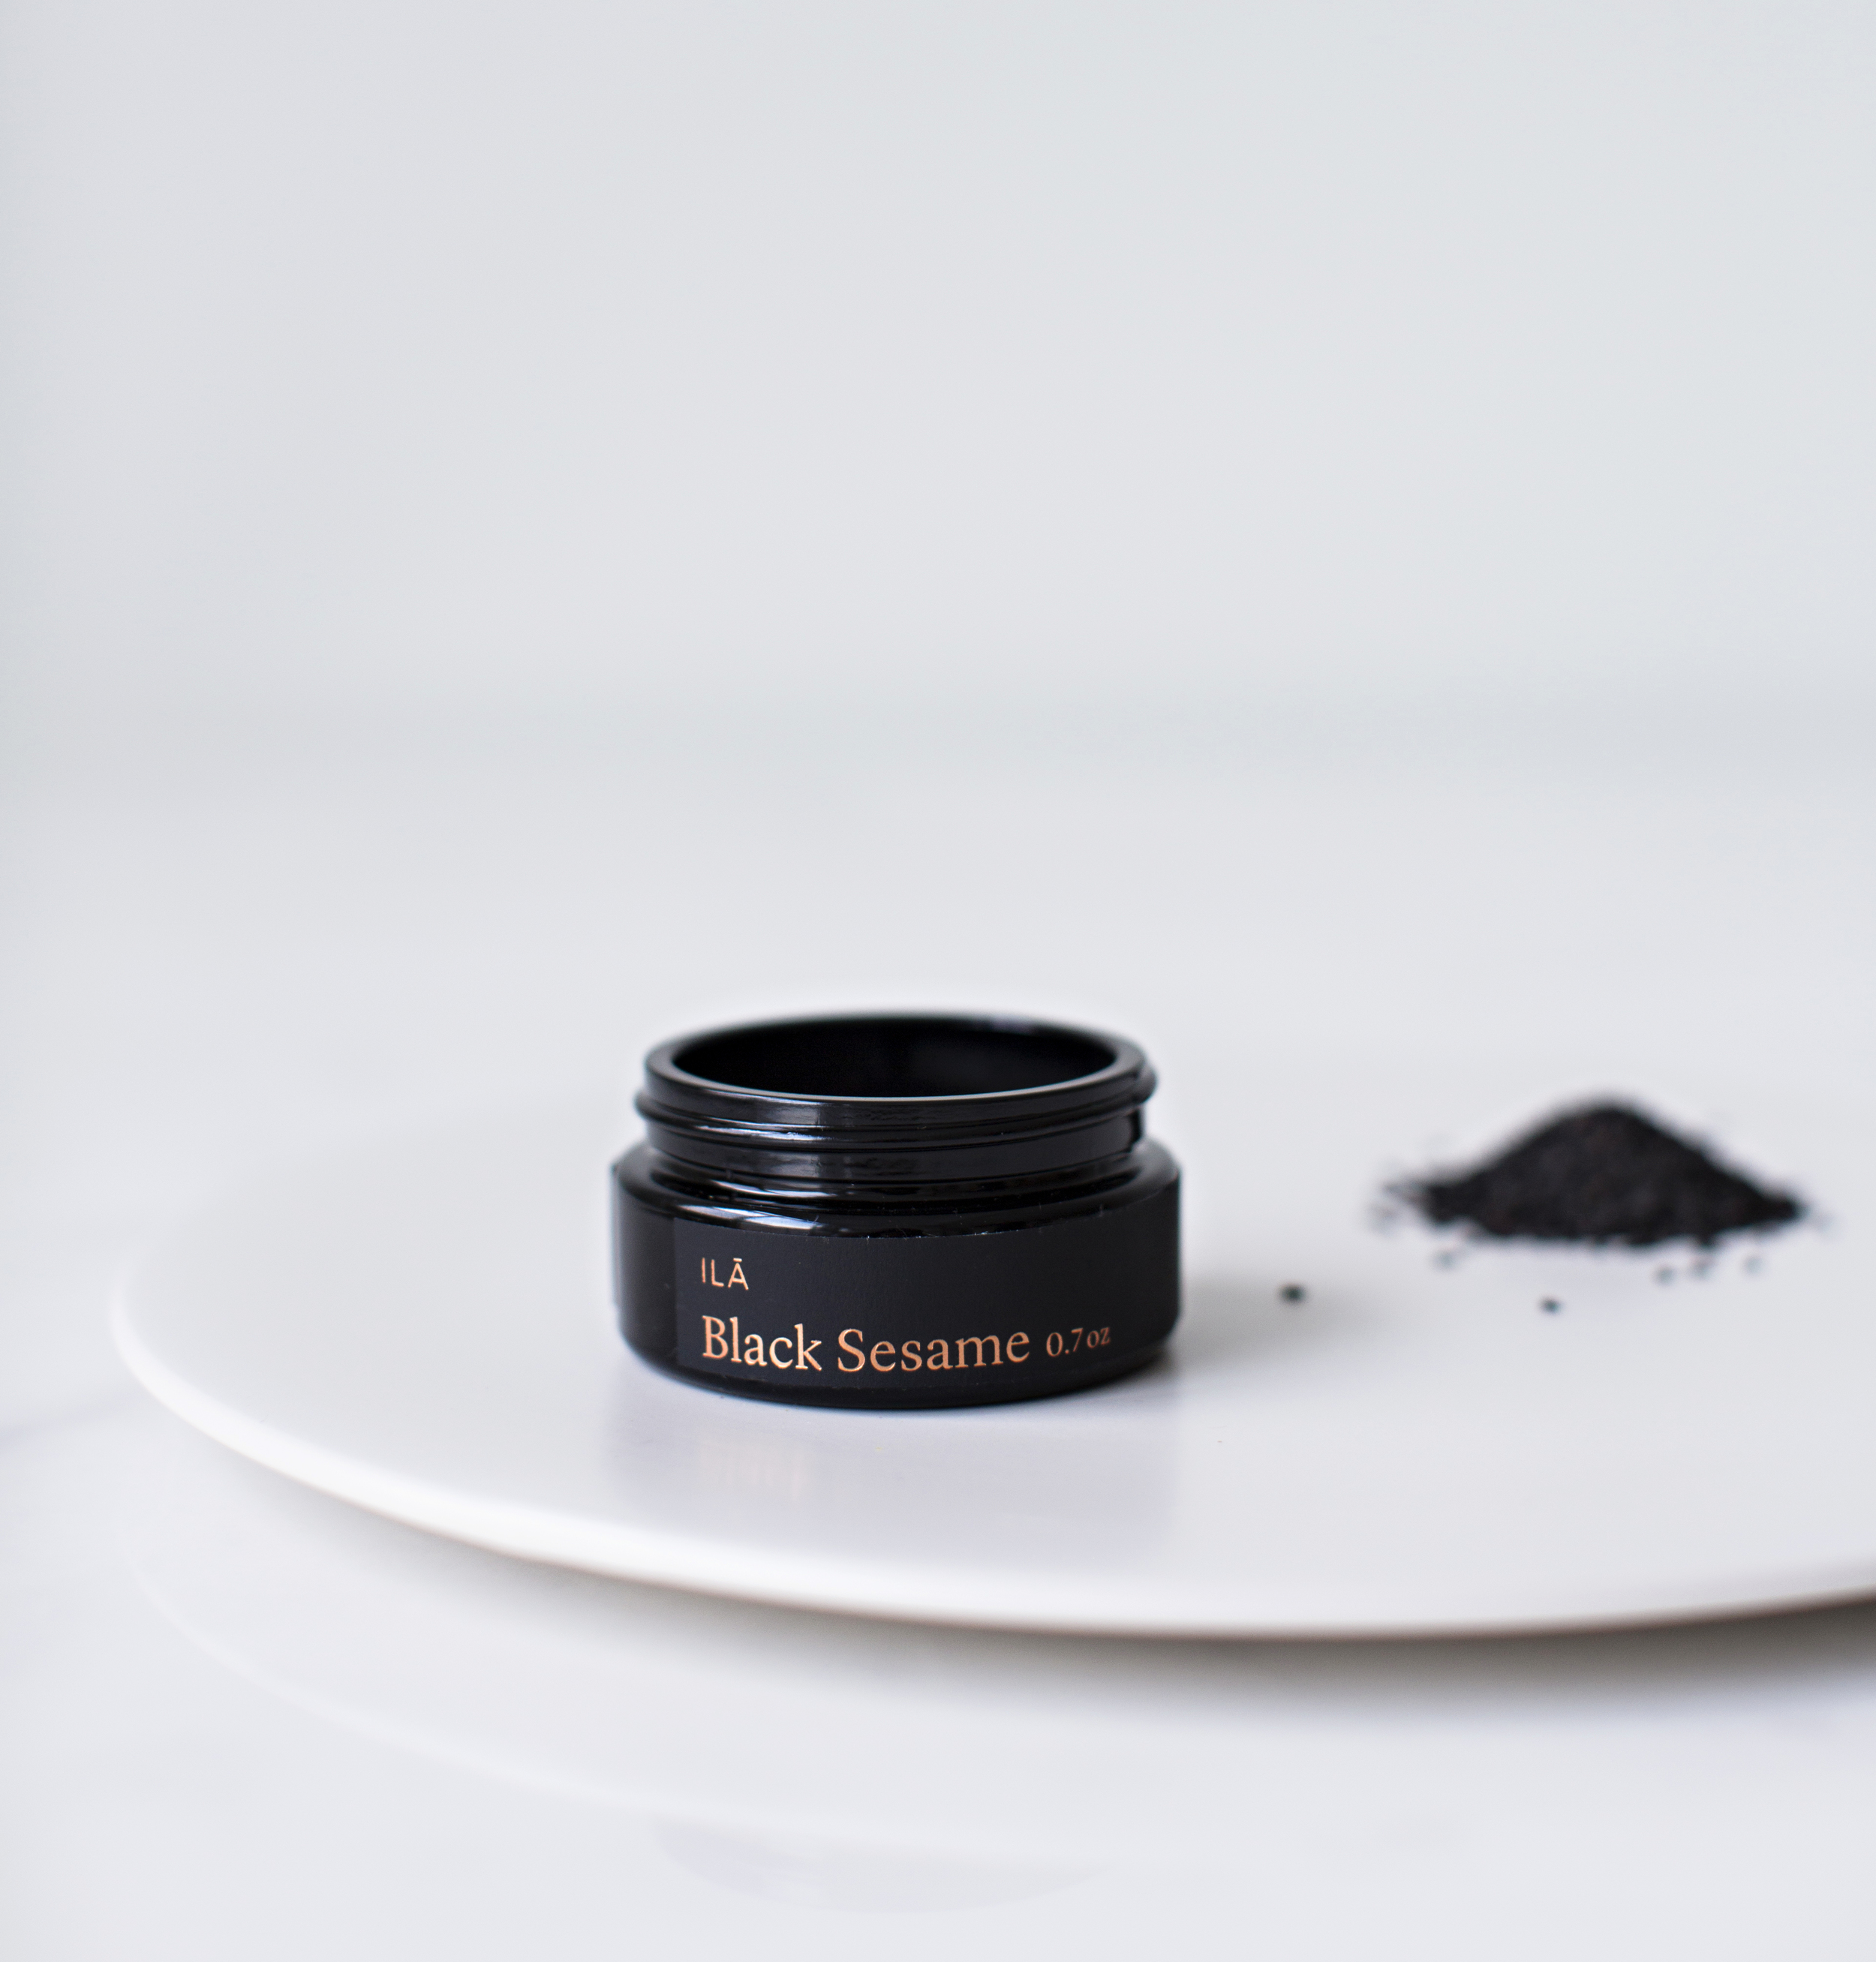 Black sesame from the ILĀ COLLECTION